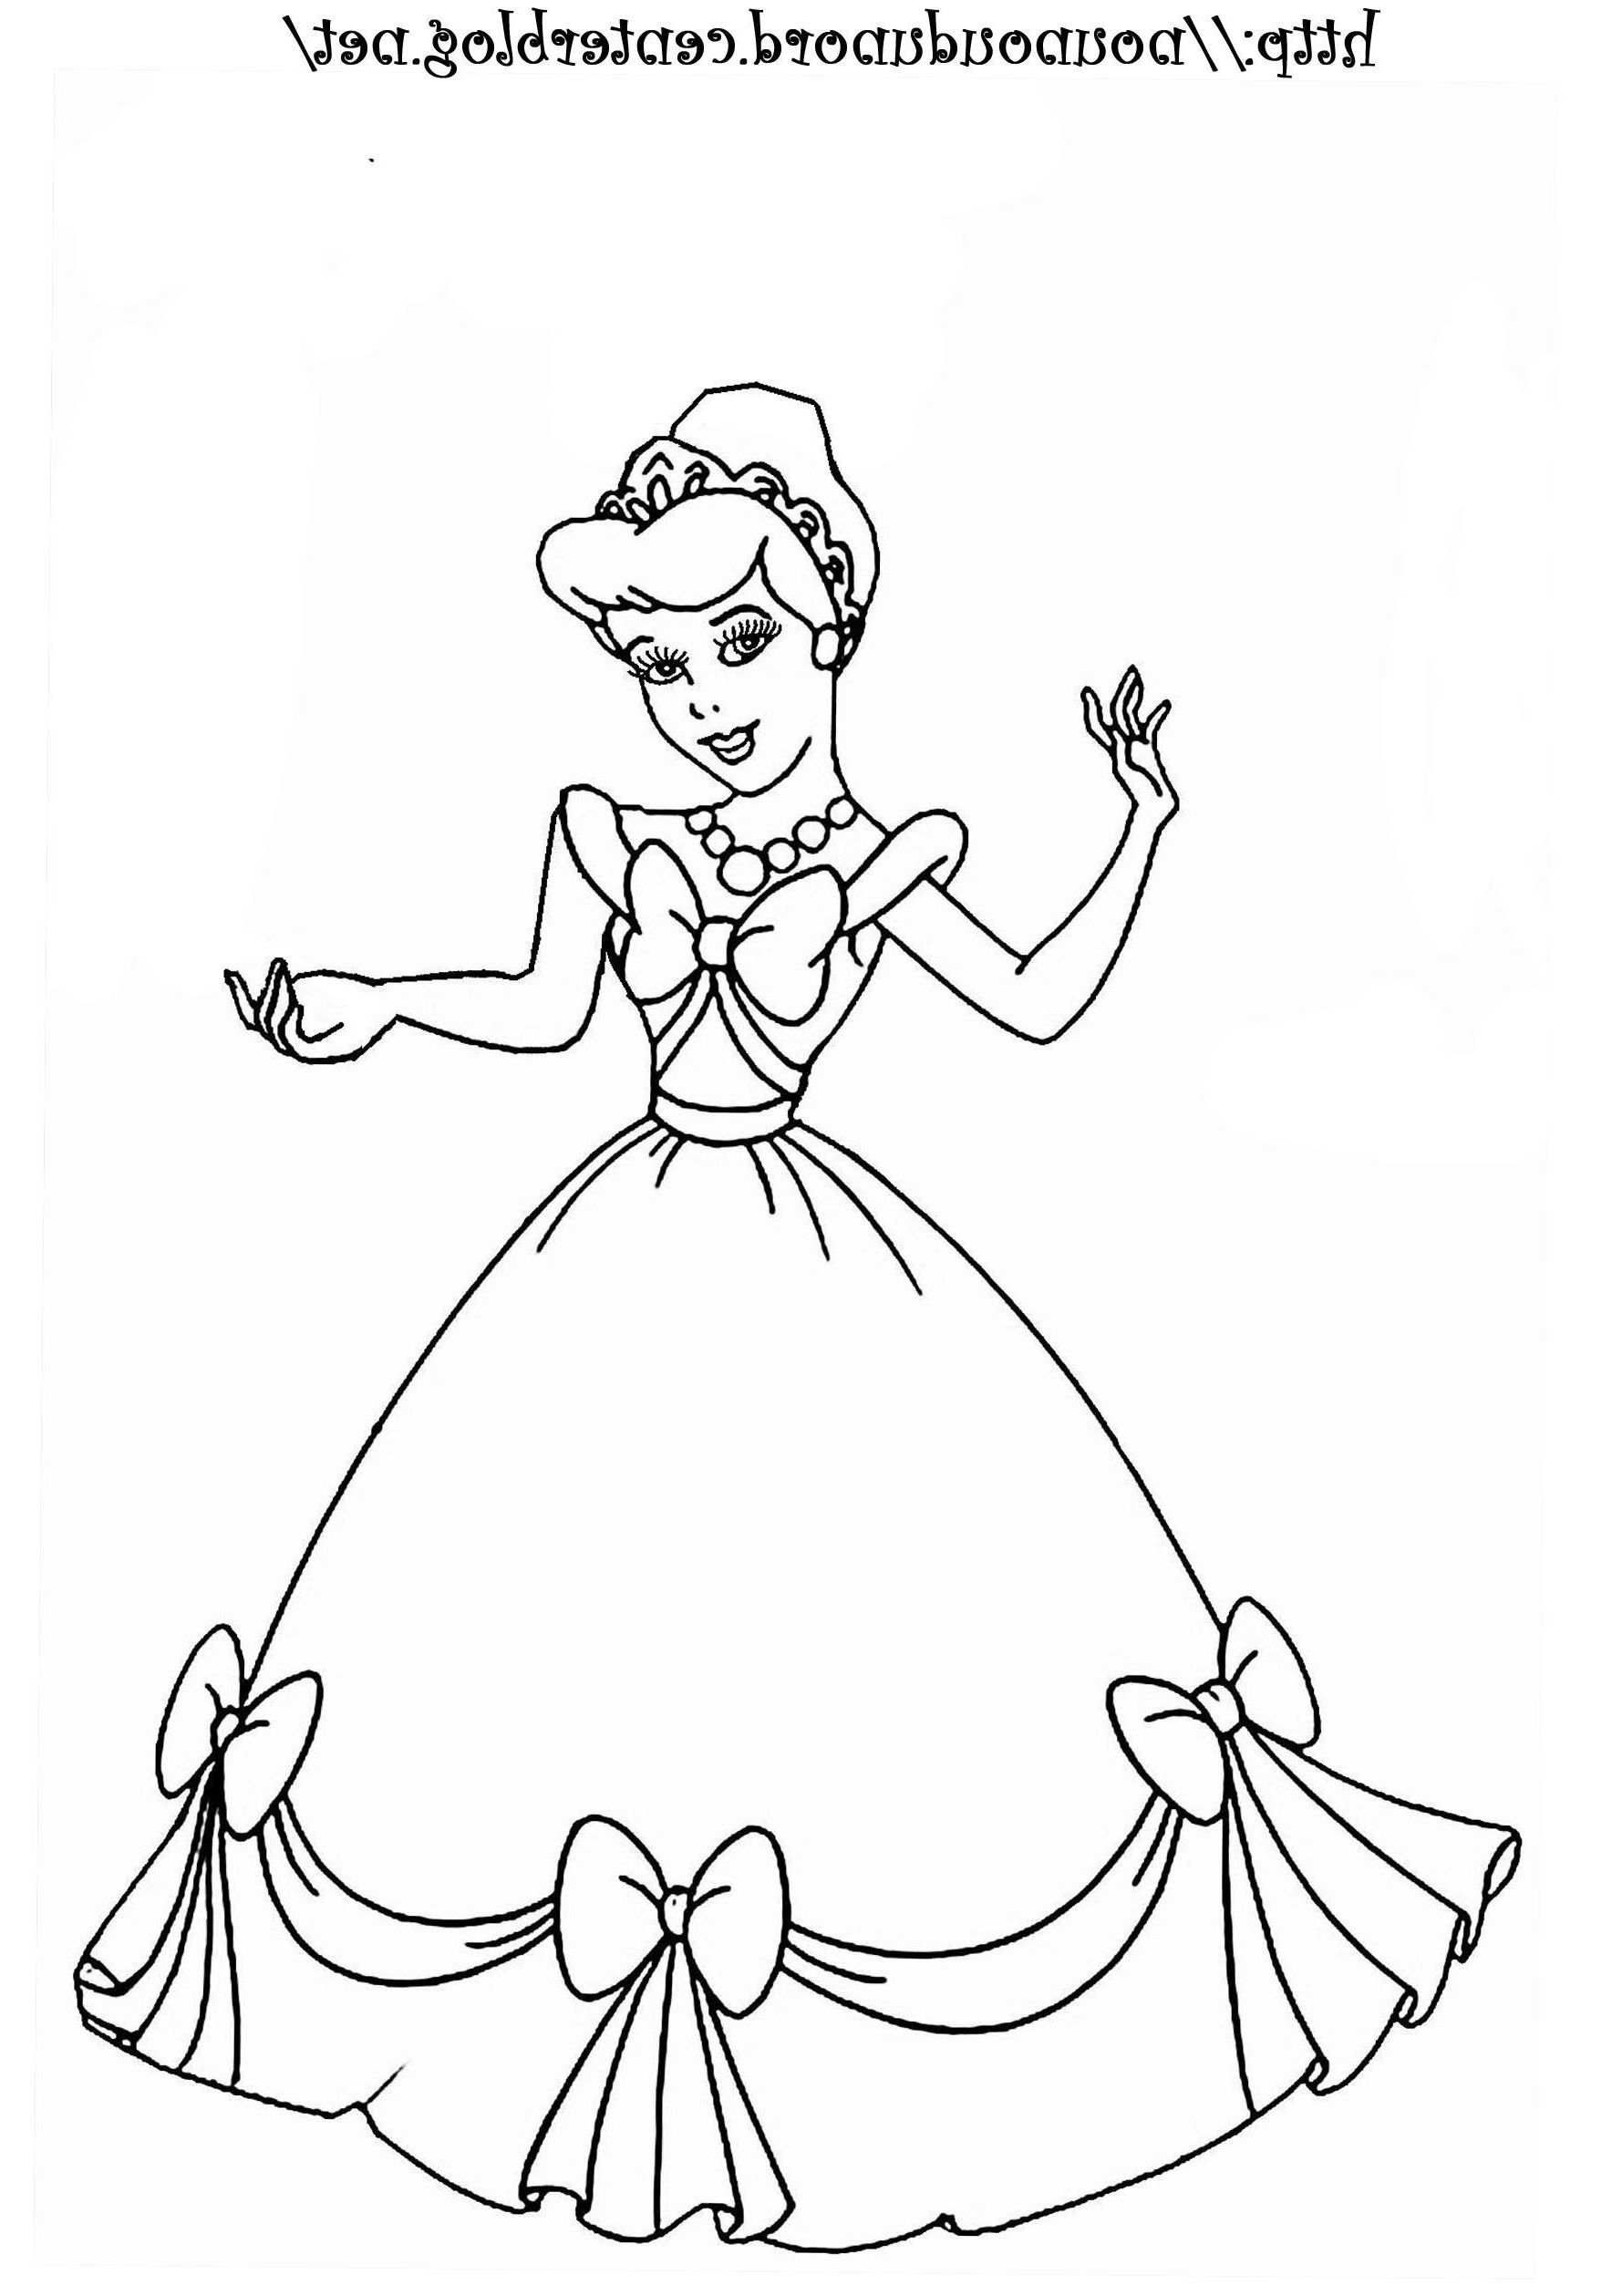 Rub Coloriage Princesse A Imprimer With Images Disney Free Hd Wallpapers Sketches